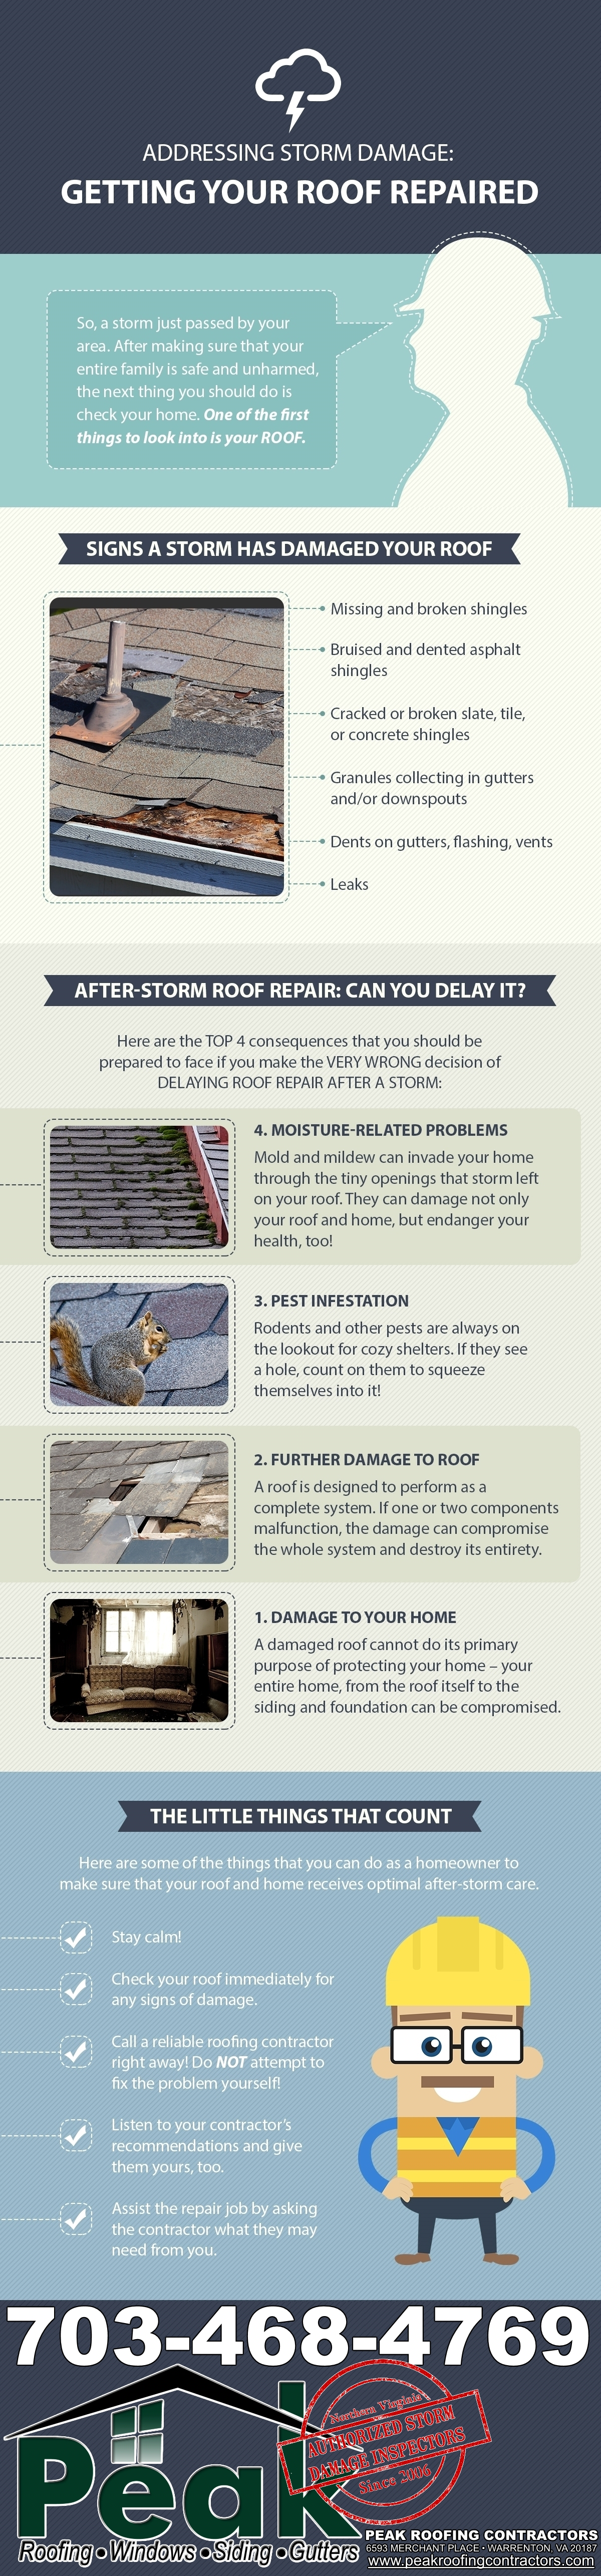 Managing Storm Damage Peak Roofing Contractors